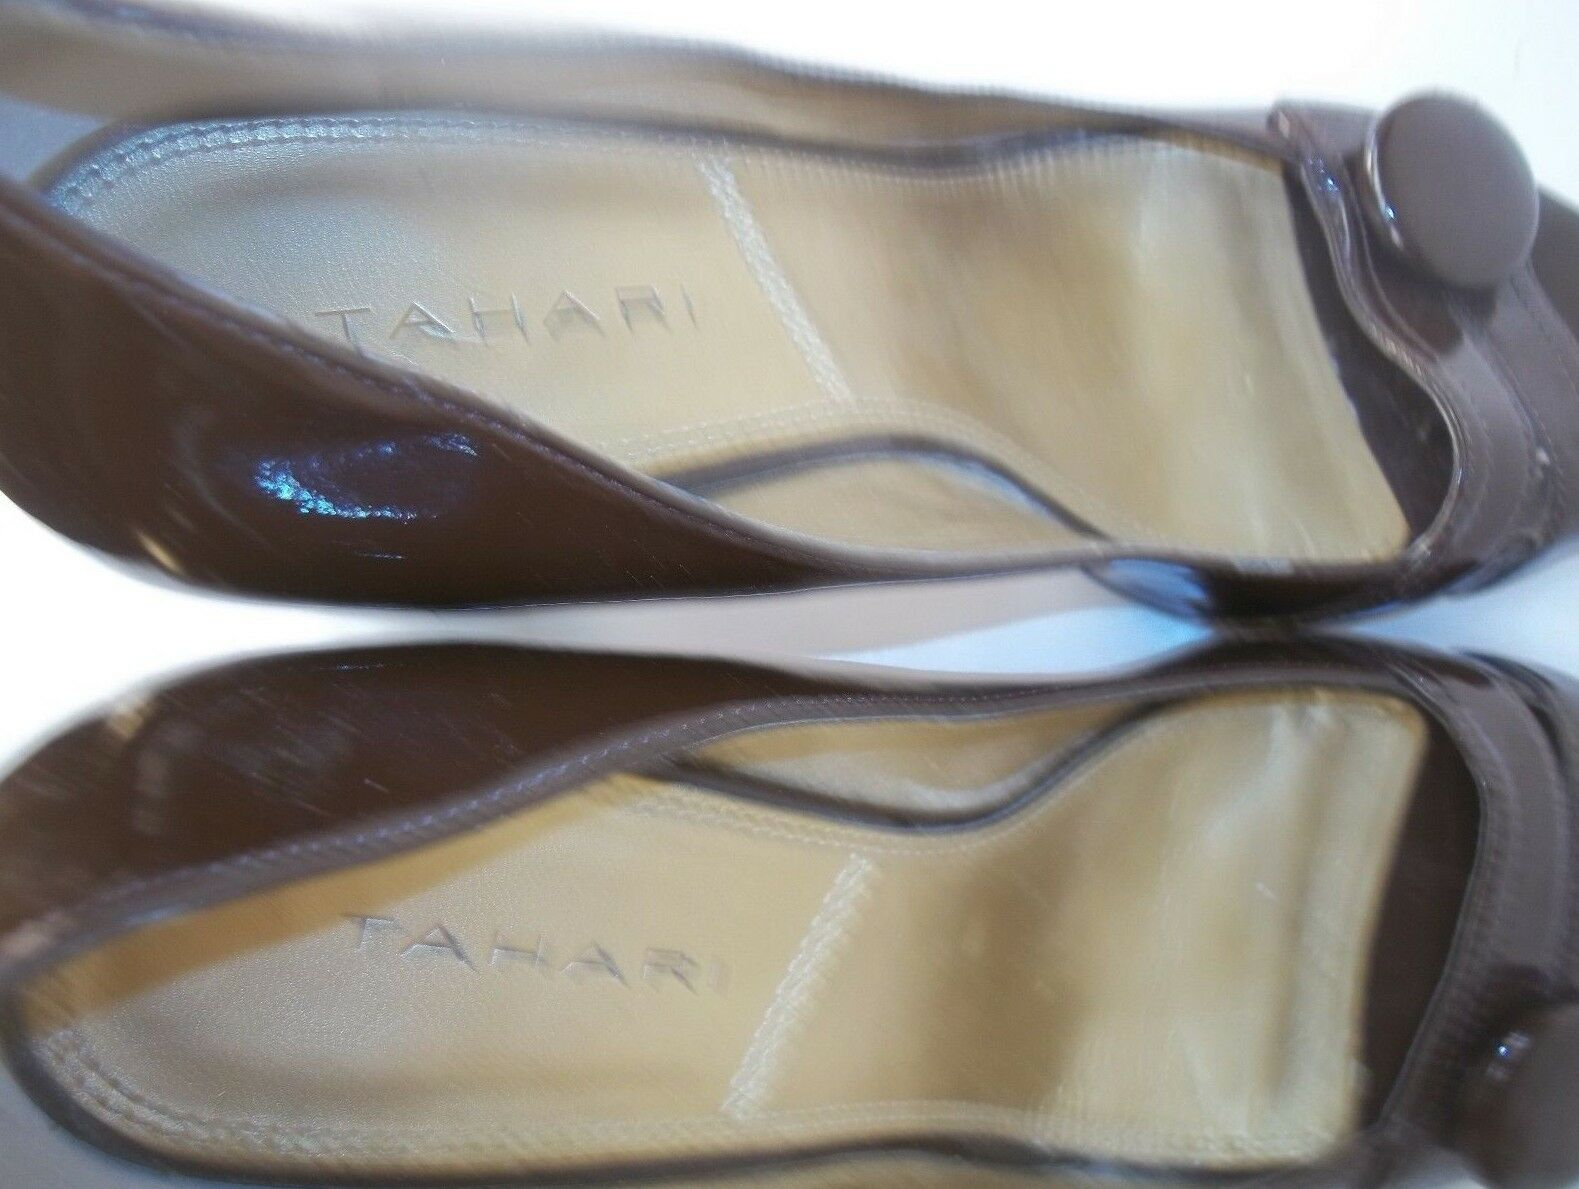 Tahari US MAC Wos Pumps Heels US Tahari 9M Braun Vegan Slip-On 067f34